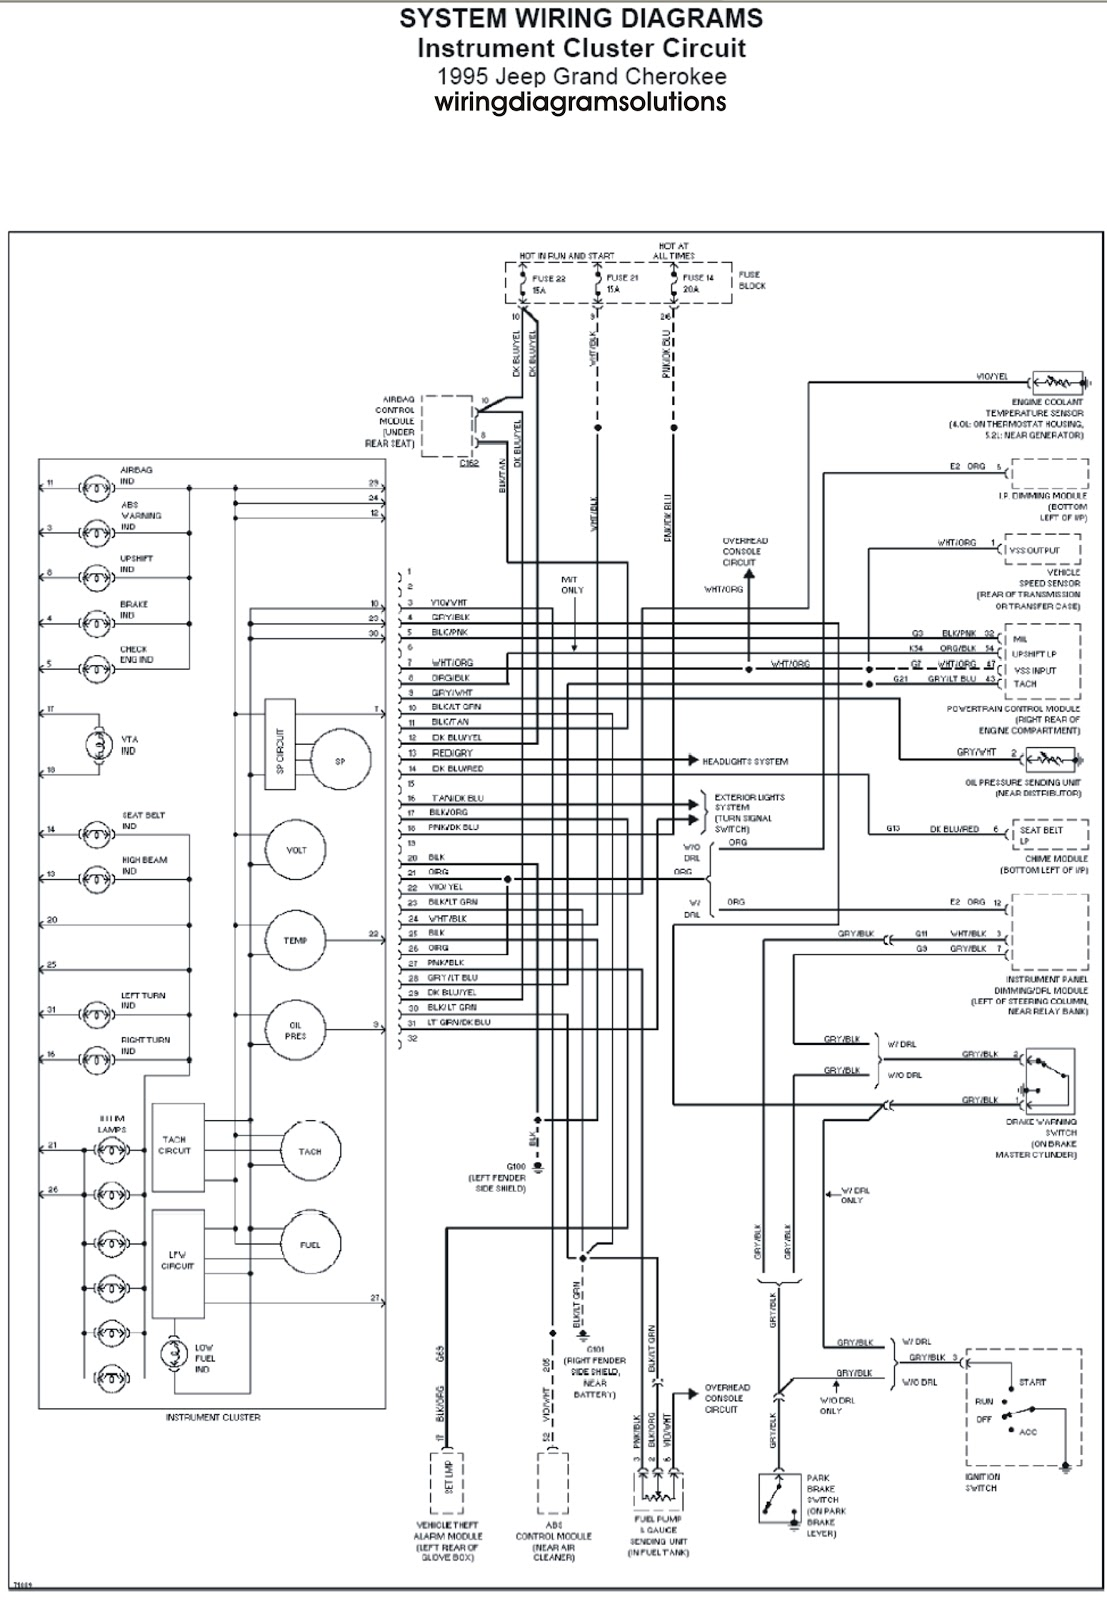 2003 jeep grand cherokee instrument fuse box diagram